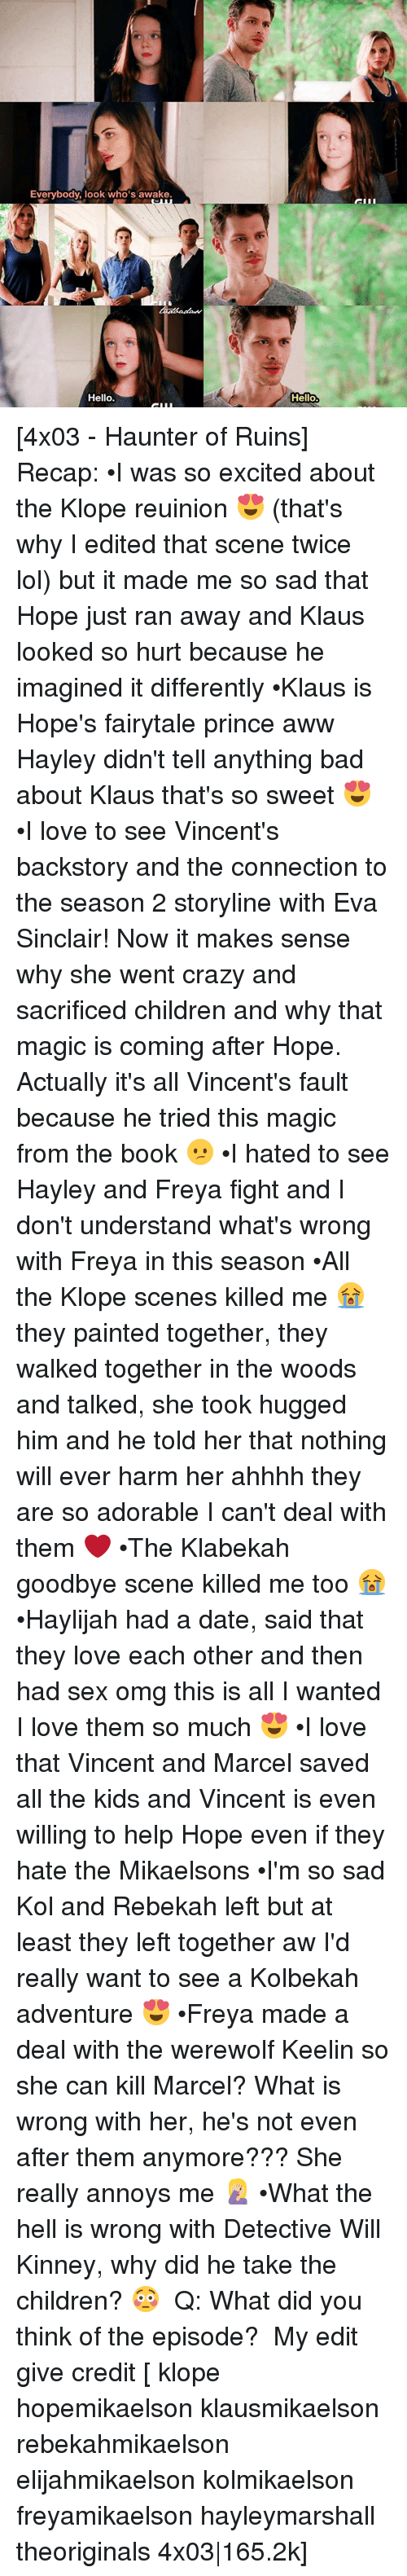 Aww, Bad, and Children: Everybody, look who's awake.  Hello.  Hello [4x03 - Haunter of Ruins] Recap: •I was so excited about the Klope reuinion 😍 (that's why I edited that scene twice lol) but it made me so sad that Hope just ran away and Klaus looked so hurt because he imagined it differently •Klaus is Hope's fairytale prince aww Hayley didn't tell anything bad about Klaus that's so sweet 😍 •I love to see Vincent's backstory and the connection to the season 2 storyline with Eva Sinclair! Now it makes sense why she went crazy and sacrificed children and why that magic is coming after Hope. Actually it's all Vincent's fault because he tried this magic from the book 😕 •I hated to see Hayley and Freya fight and I don't understand what's wrong with Freya in this season •All the Klope scenes killed me 😭 they painted together, they walked together in the woods and talked, she took hugged him and he told her that nothing will ever harm her ahhhh they are so adorable I can't deal with them ❤ •The Klabekah goodbye scene killed me too 😭 •Haylijah had a date, said that they love each other and then had sex omg this is all I wanted I love them so much 😍 •I love that Vincent and Marcel saved all the kids and Vincent is even willing to help Hope even if they hate the Mikaelsons •I'm so sad Kol and Rebekah left but at least they left together aw I'd really want to see a Kolbekah adventure 😍 •Freya made a deal with the werewolf Keelin so she can kill Marcel? What is wrong with her, he's not even after them anymore??? She really annoys me 🤦🏼♀️ •What the hell is wrong with Detective Will Kinney, why did he take the children? 😳 ⠀ Q: What did you think of the episode? ⠀ My edit give credit [ klope hopemikaelson klausmikaelson rebekahmikaelson elijahmikaelson kolmikaelson freyamikaelson hayleymarshall theoriginals 4x03|165.2k]